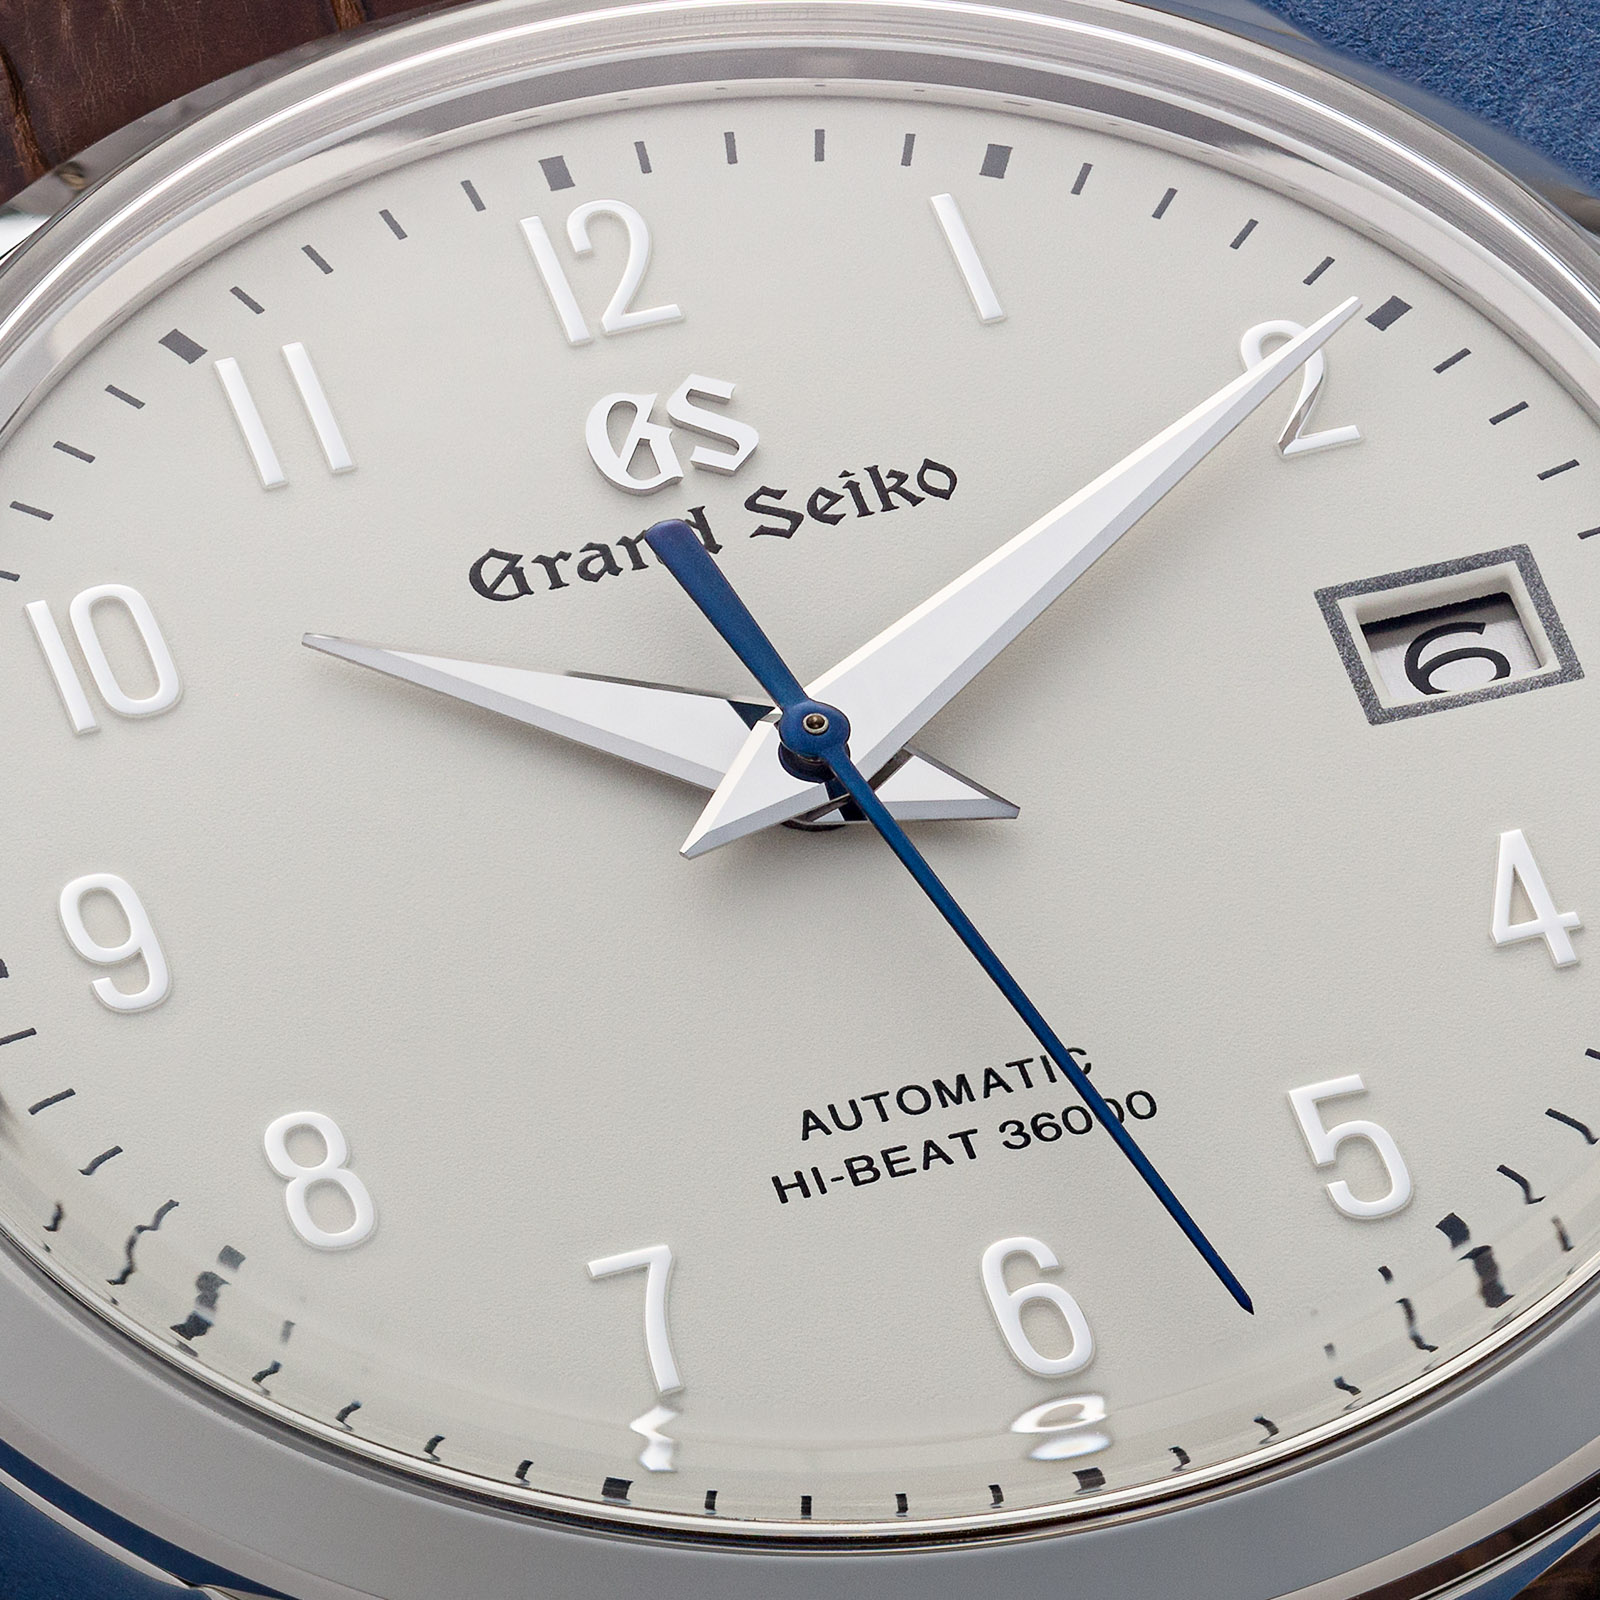 Grand Seiko stainless steel wristwatch with an ivory dial and Arabic numerals.